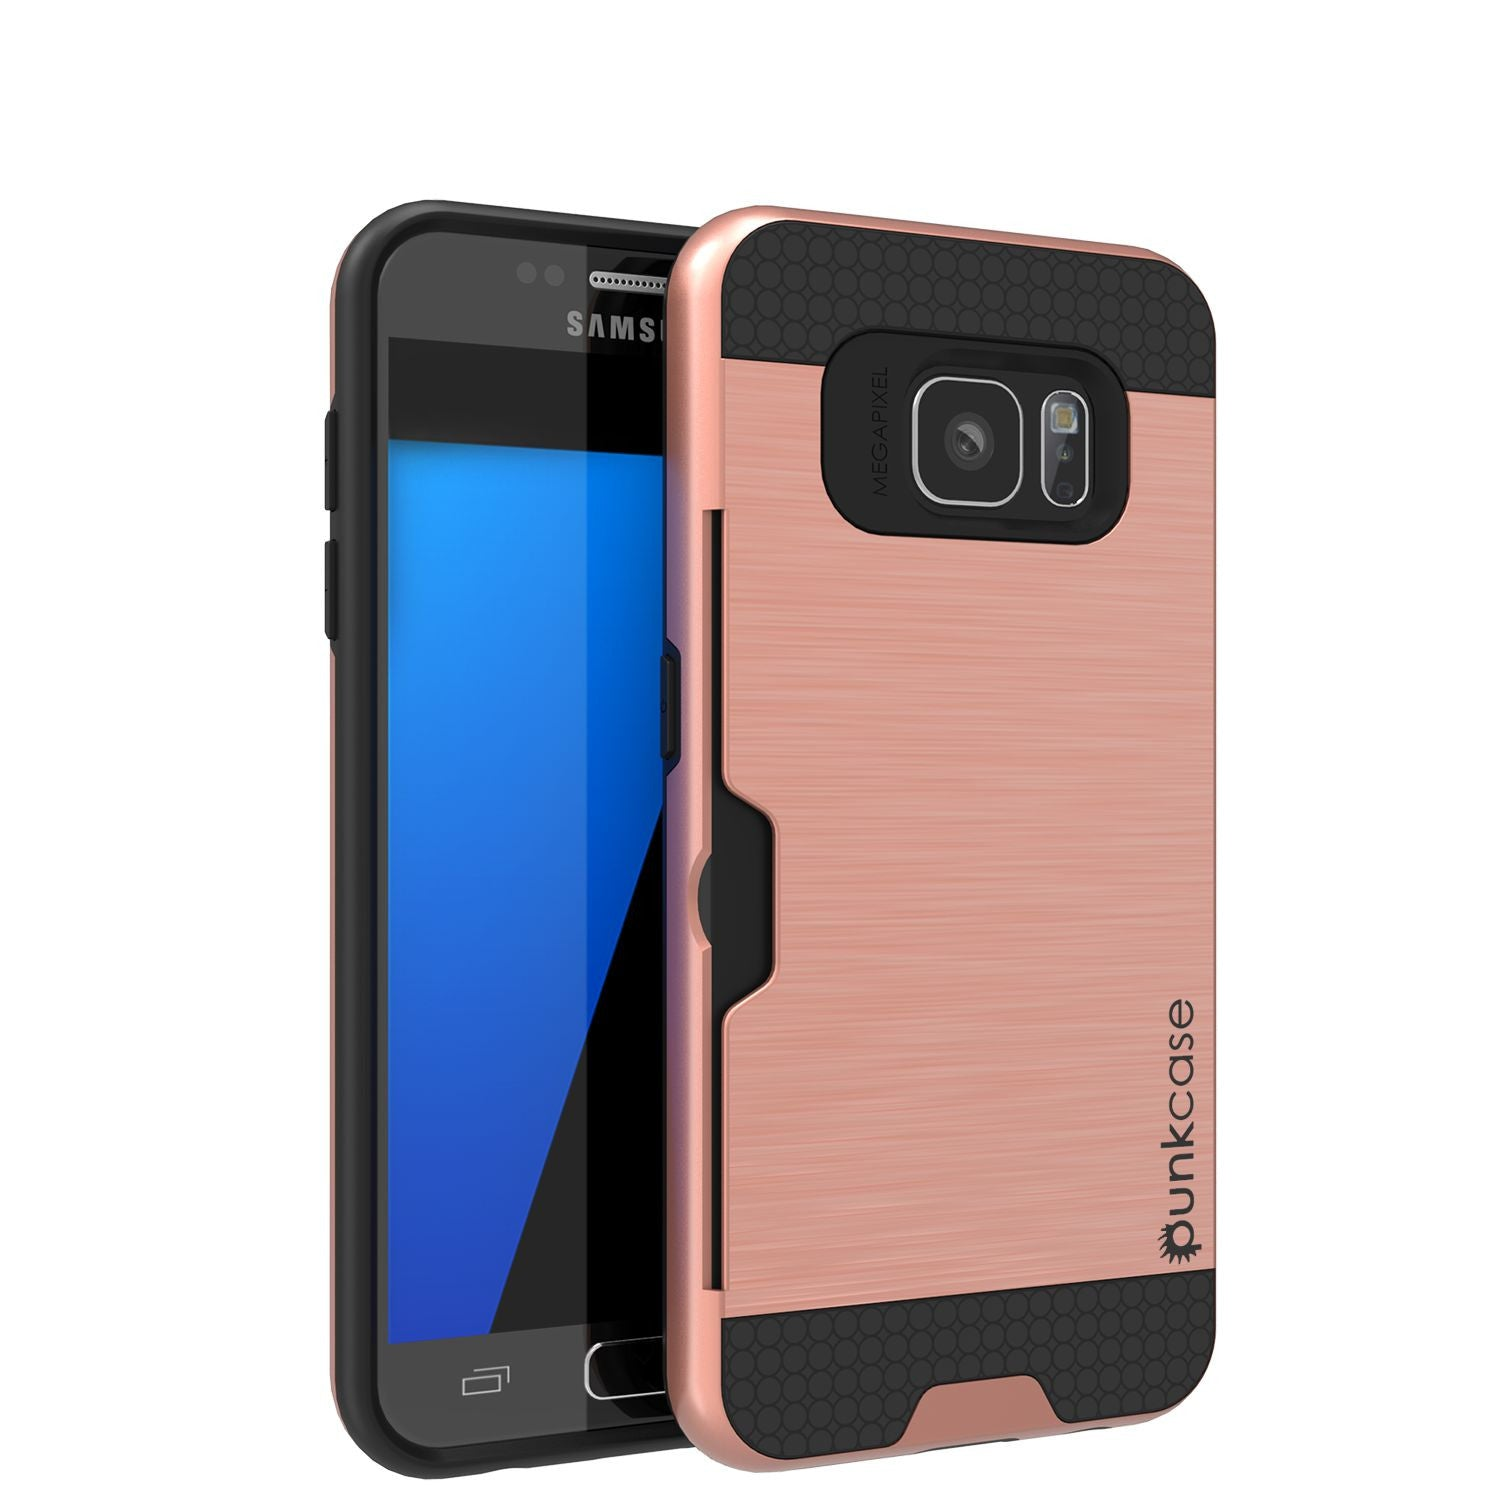 Galaxy s7 Case PunkCase SLOT Rose Series Slim Armor Soft Cover Case w/ Tempered Glass